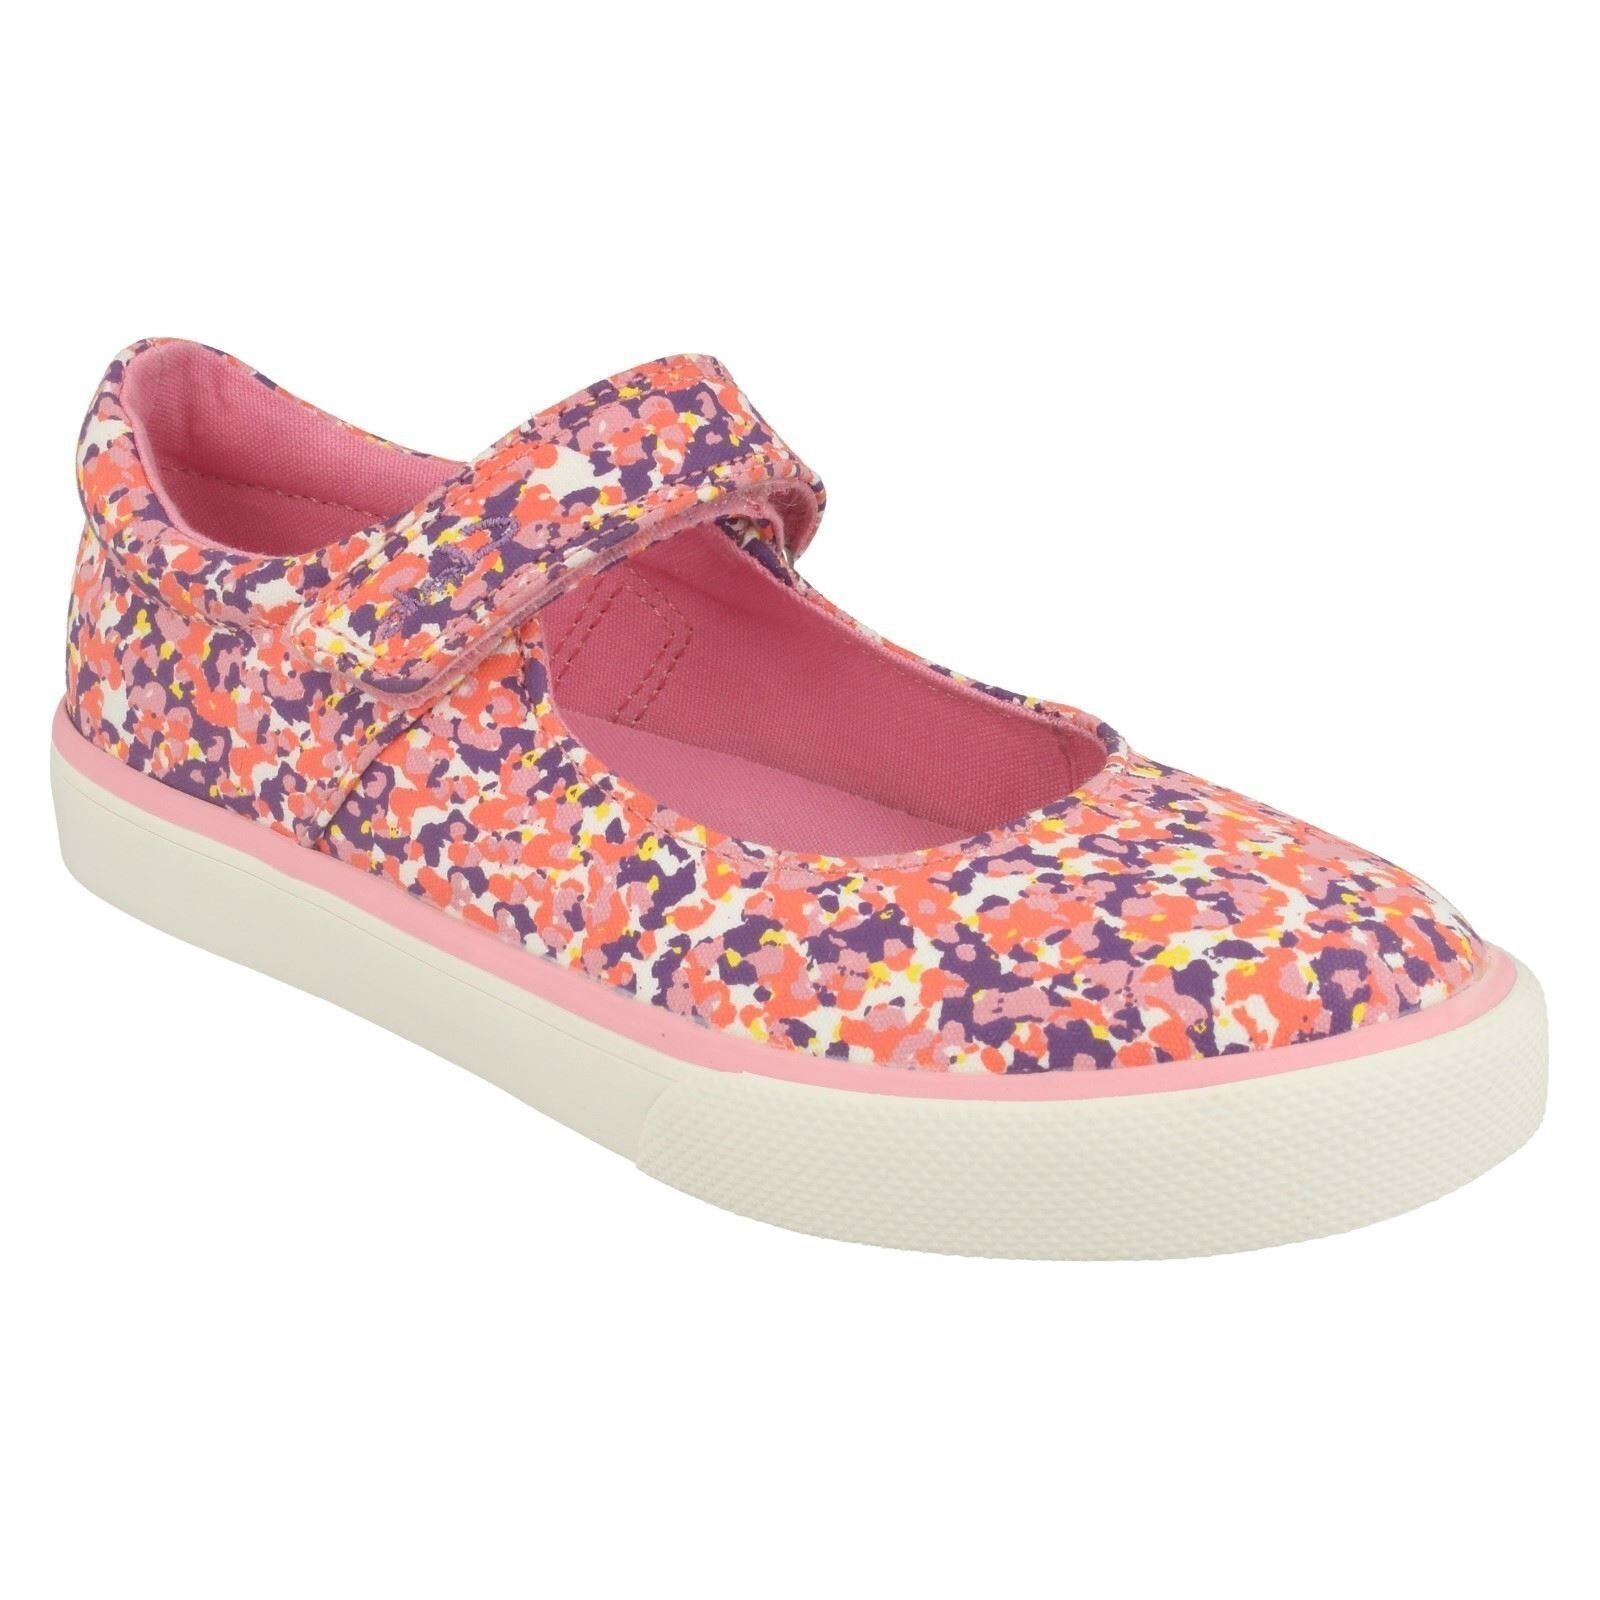 BRILL GEM GIRLS CLARKS RIPTAPE STRAP CASUAL PINK CANVAS SHOES DOODLES PUMPS SIZE